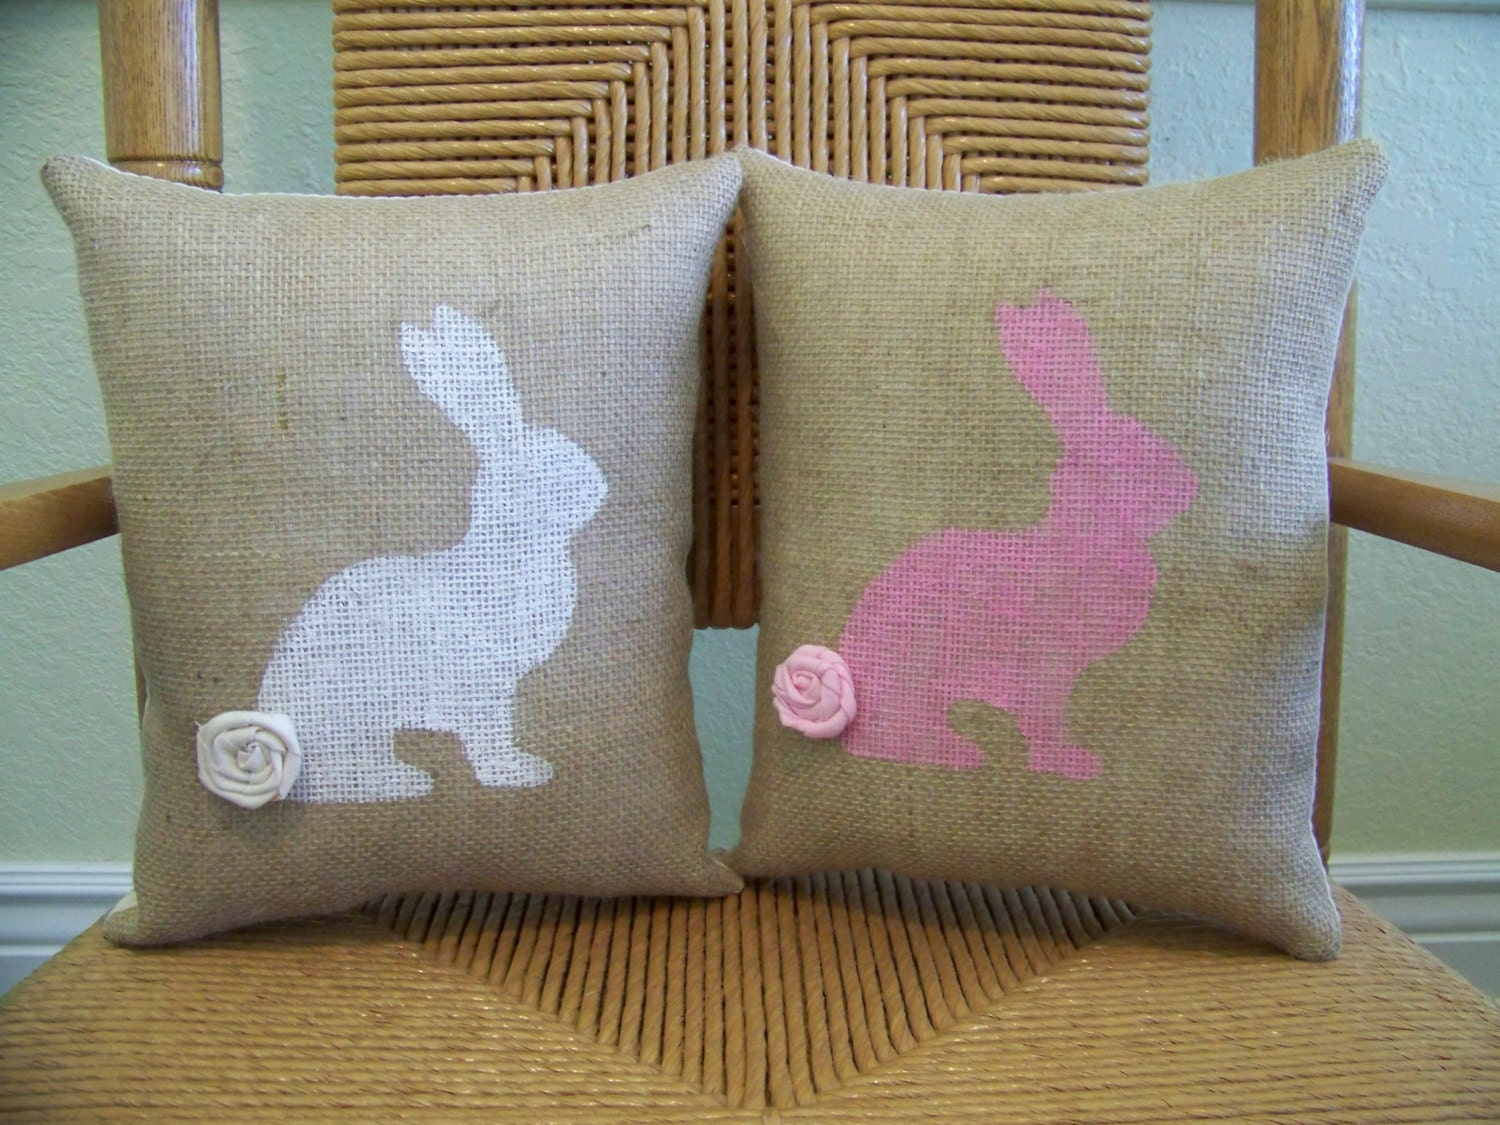 Decorative Pillows With Rabbits : Bunny pillow Rabbit pillow Easter pillow by KelleysCollections